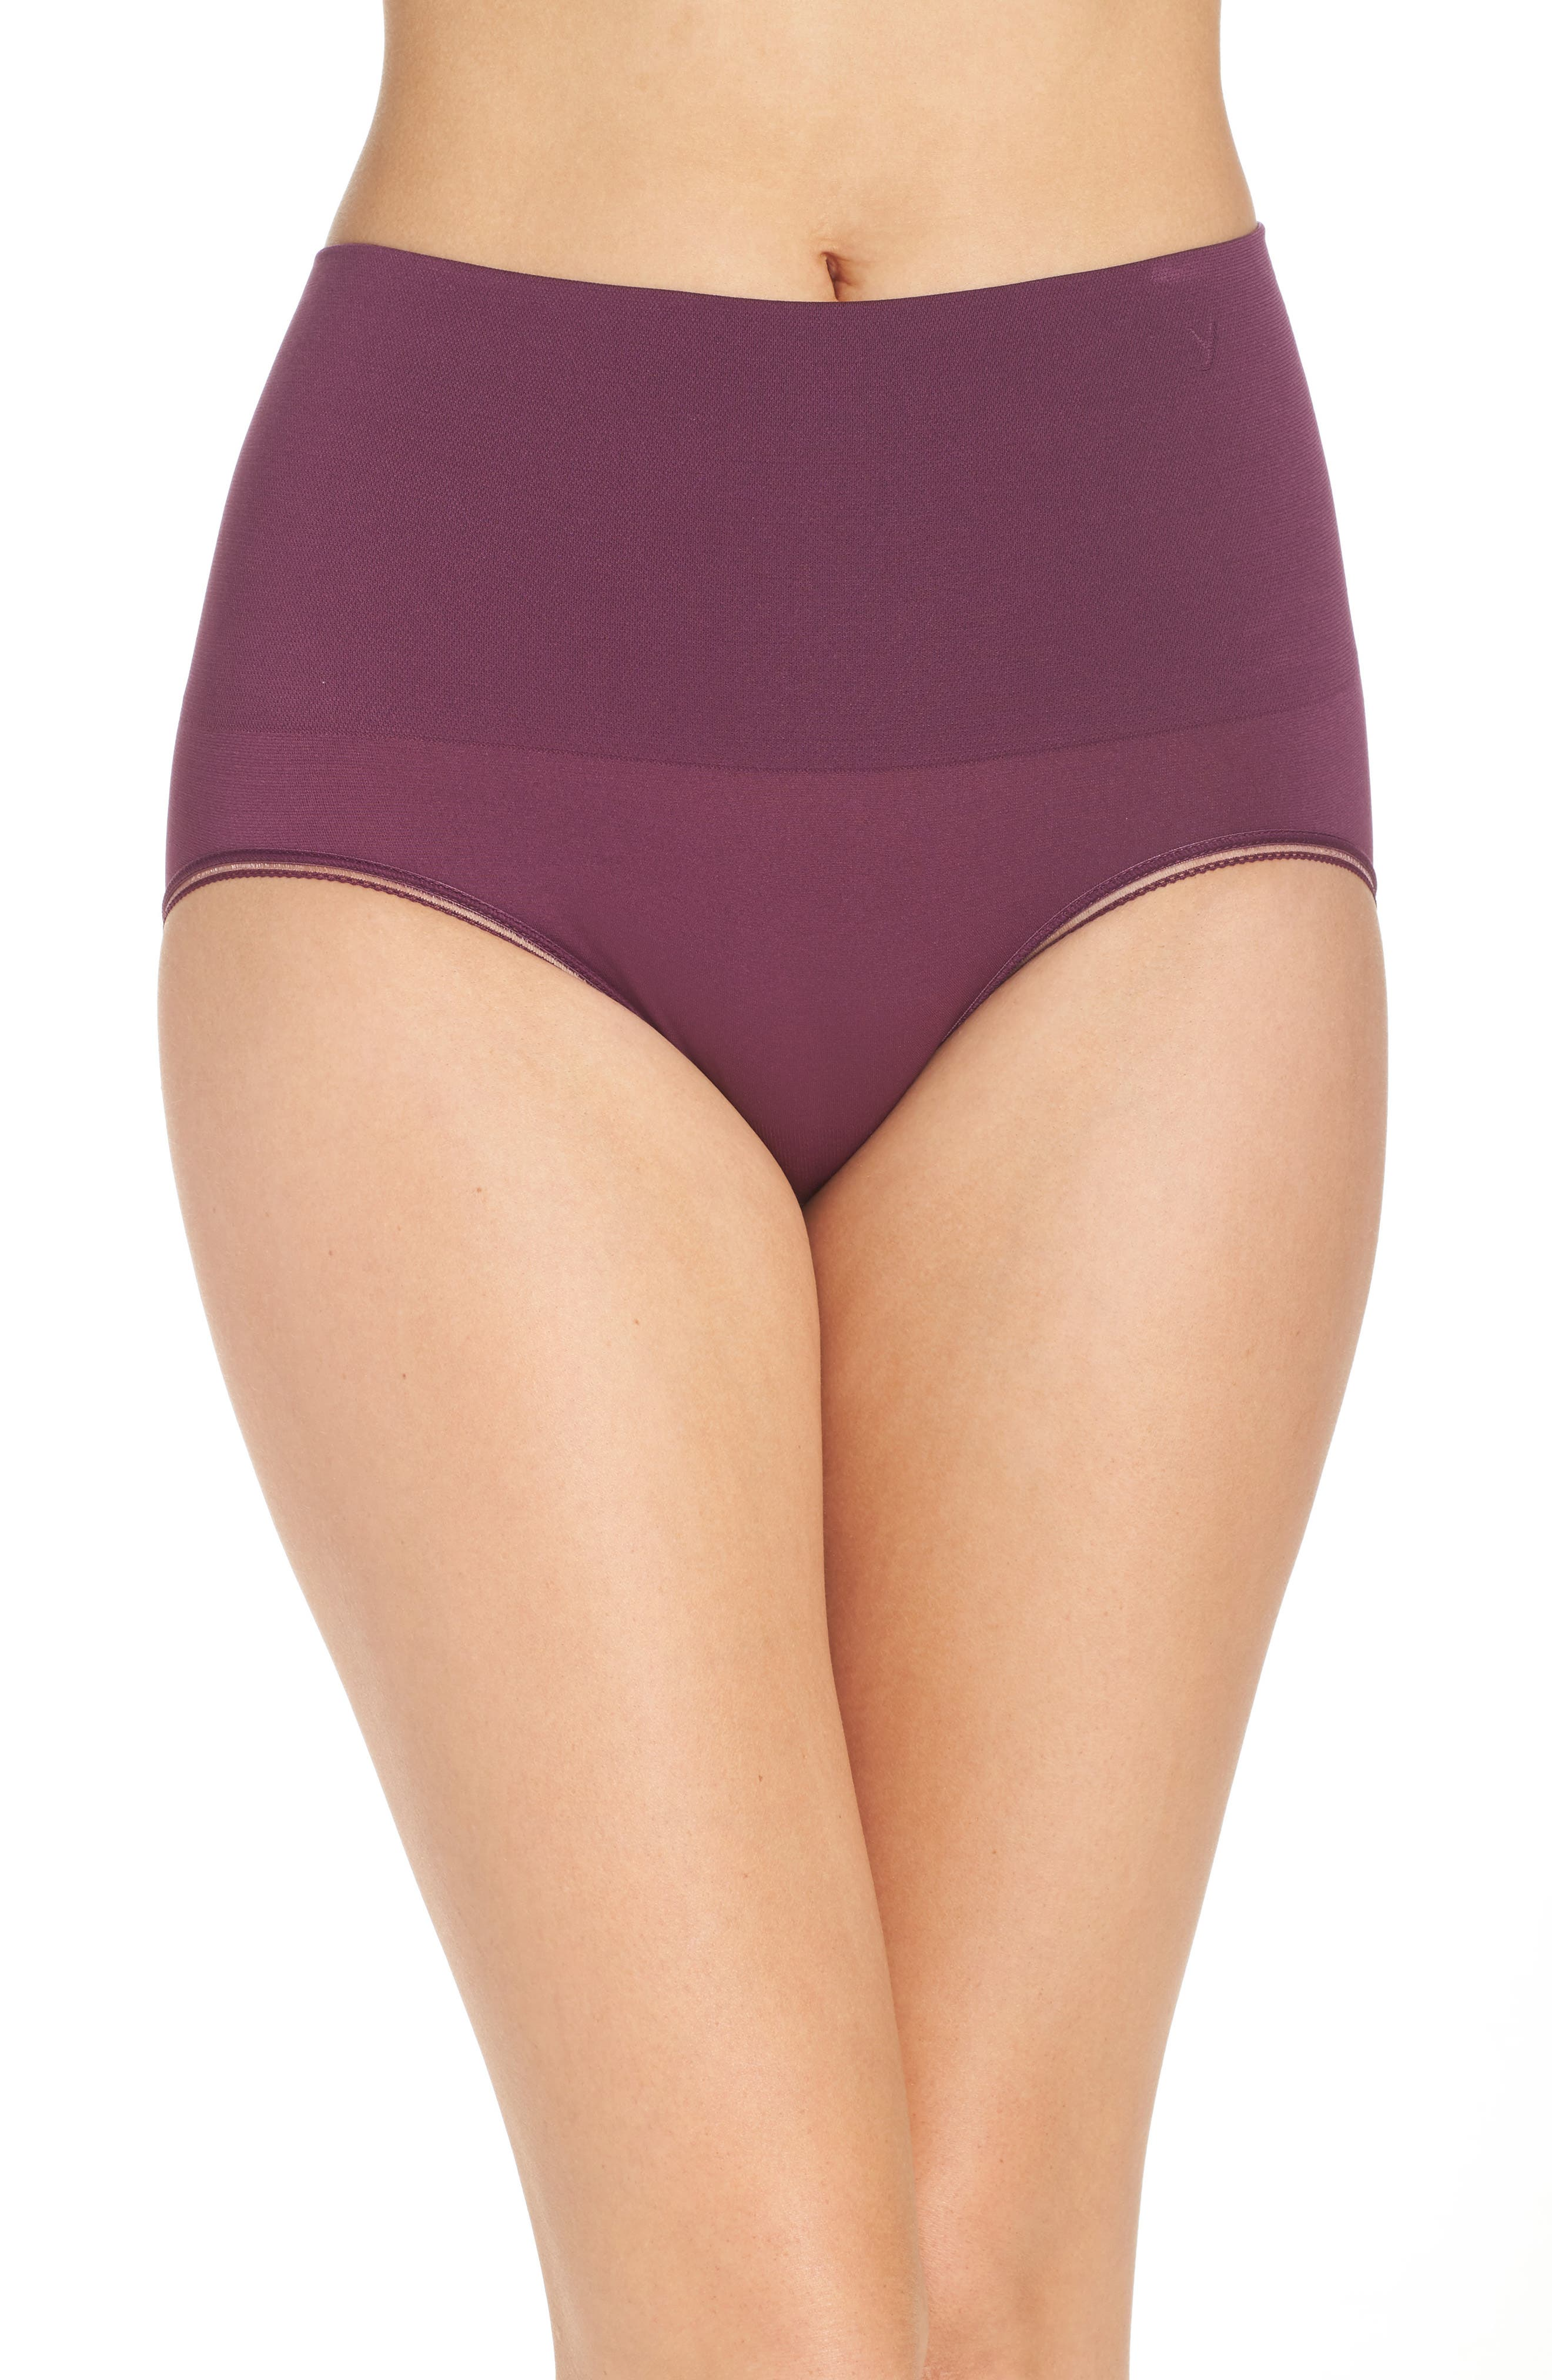 Main Image - Yummie Ultralight Seamless Shaping Briefs (2 for $30)